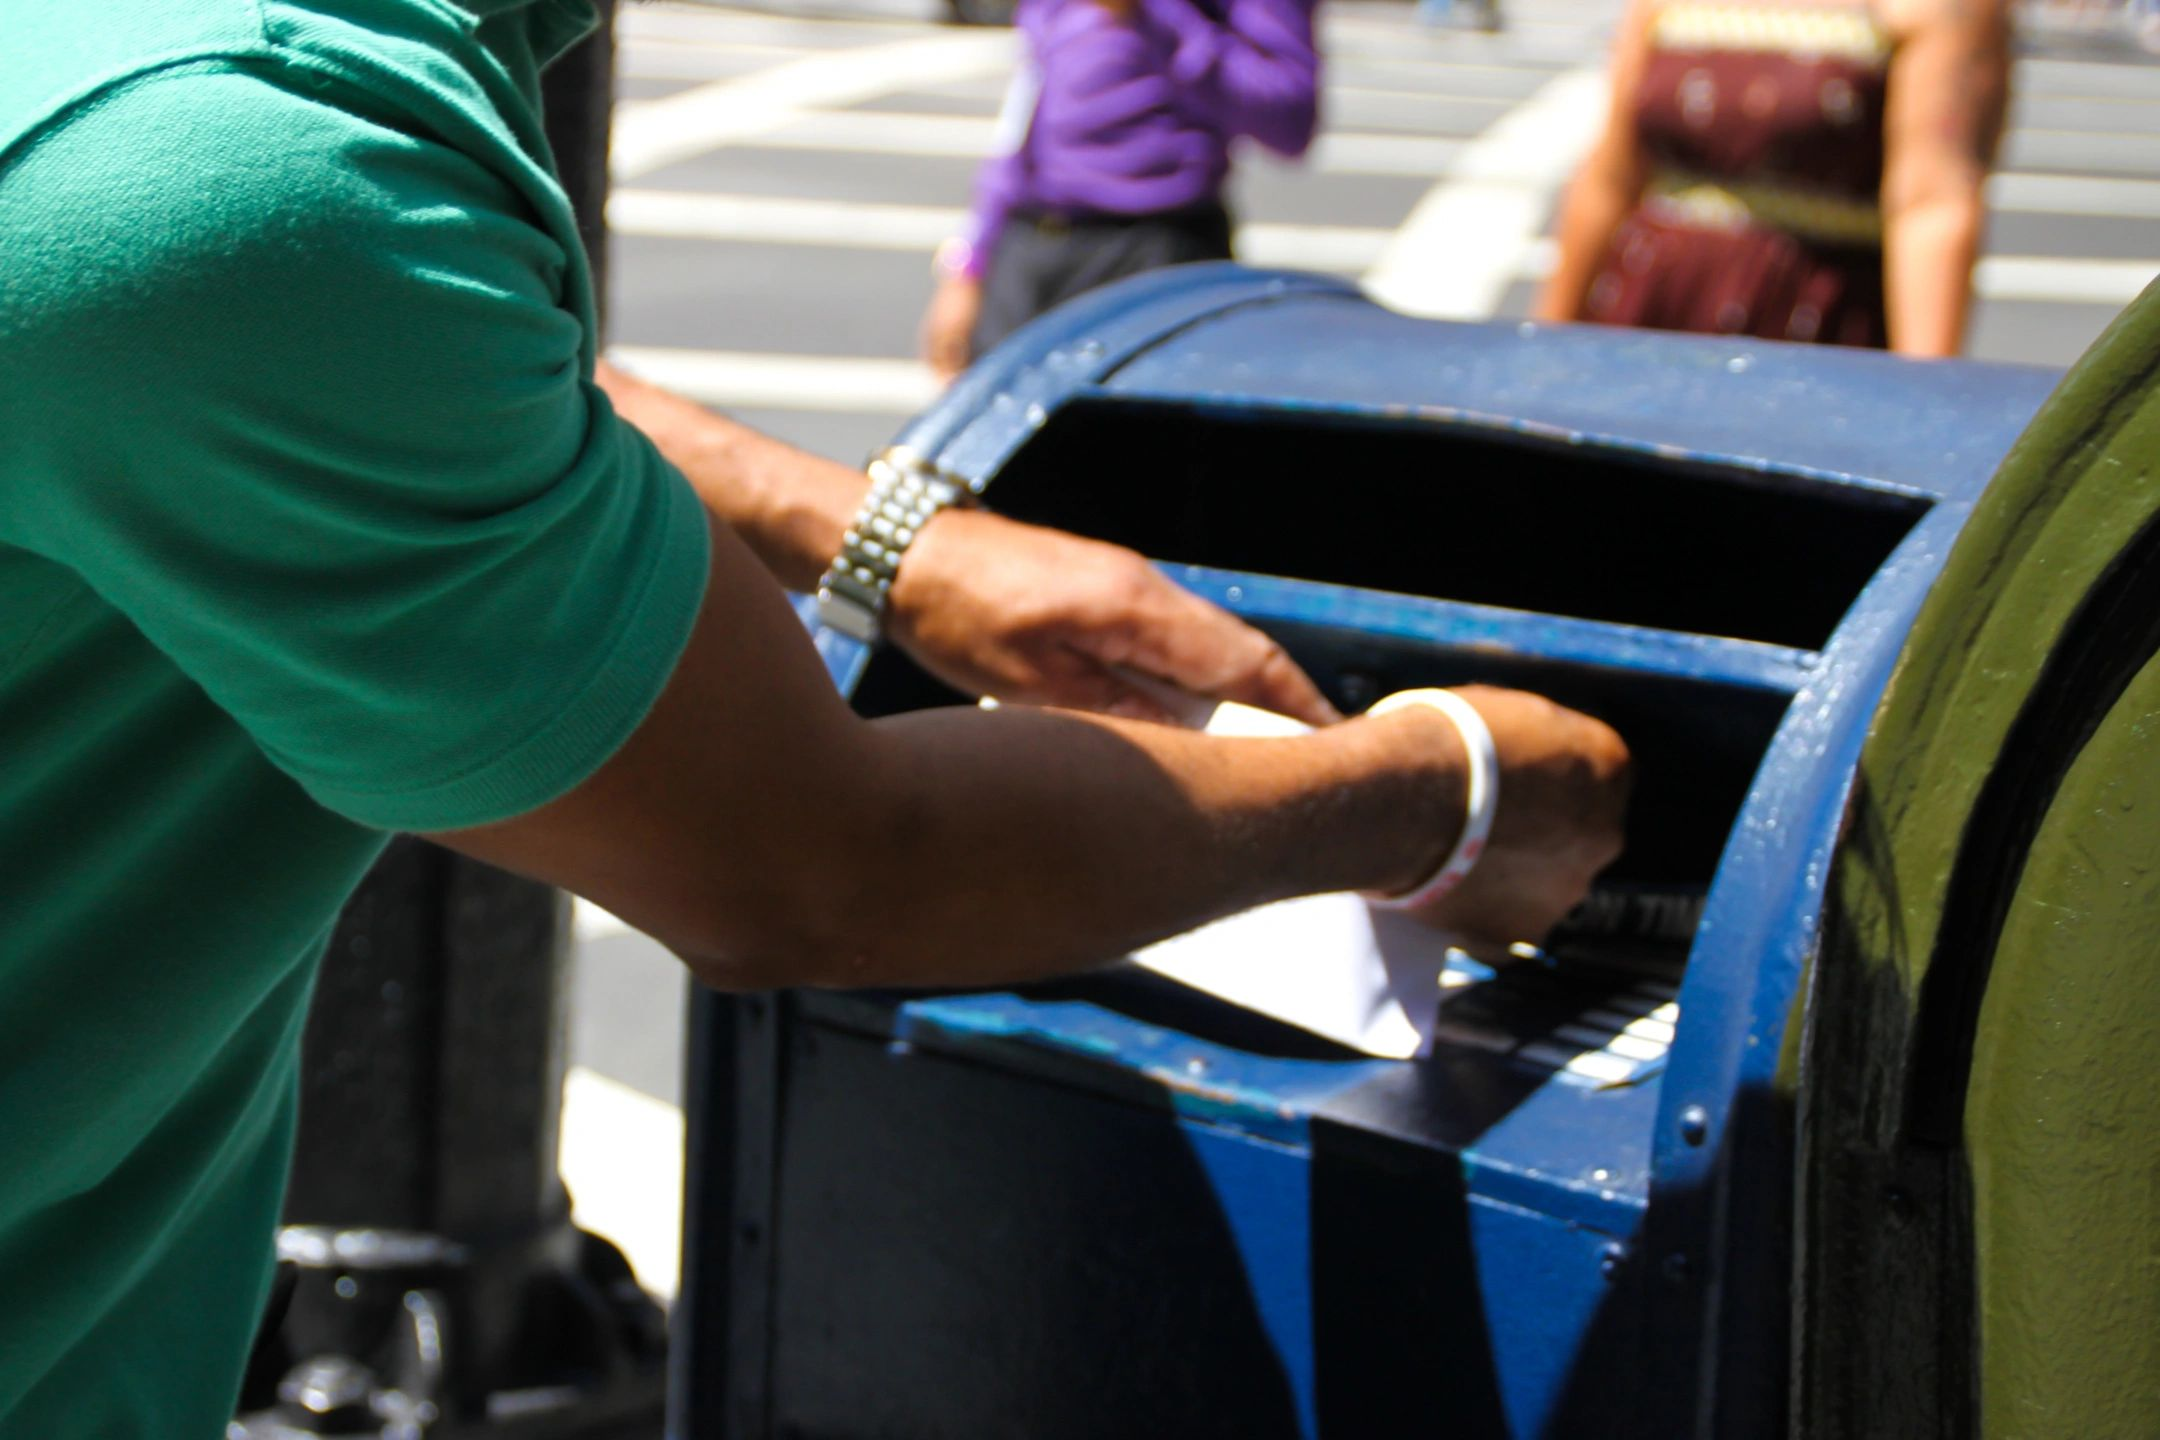 U.S. Postal Service more proof the government more efficient than the private sector